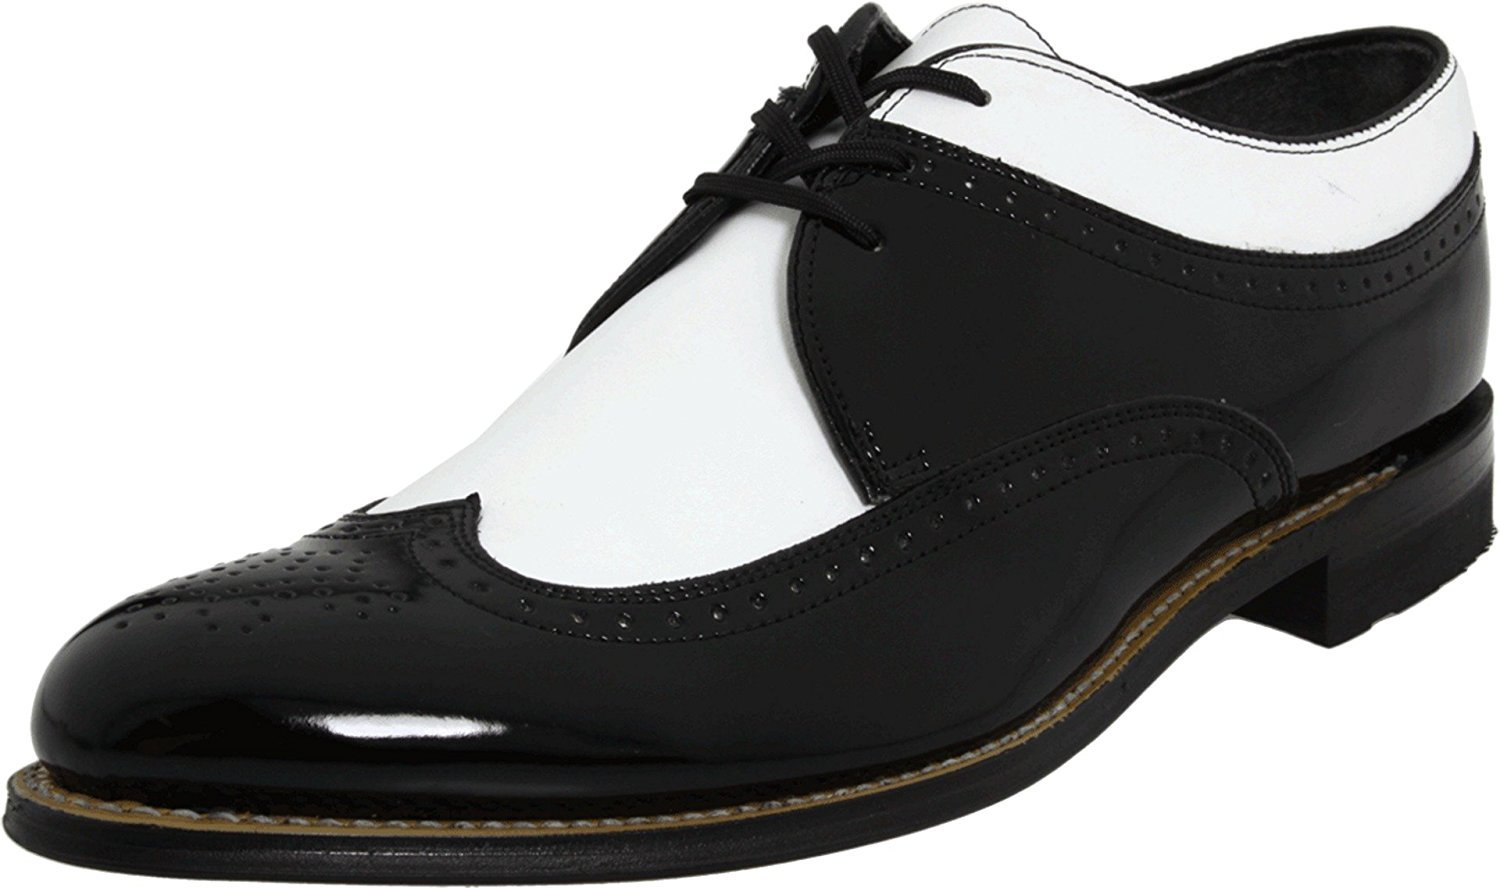 Stacy Adams DAYTON Mens Black White Wing Tip Oxford Dress Shoes by Stacy Adams